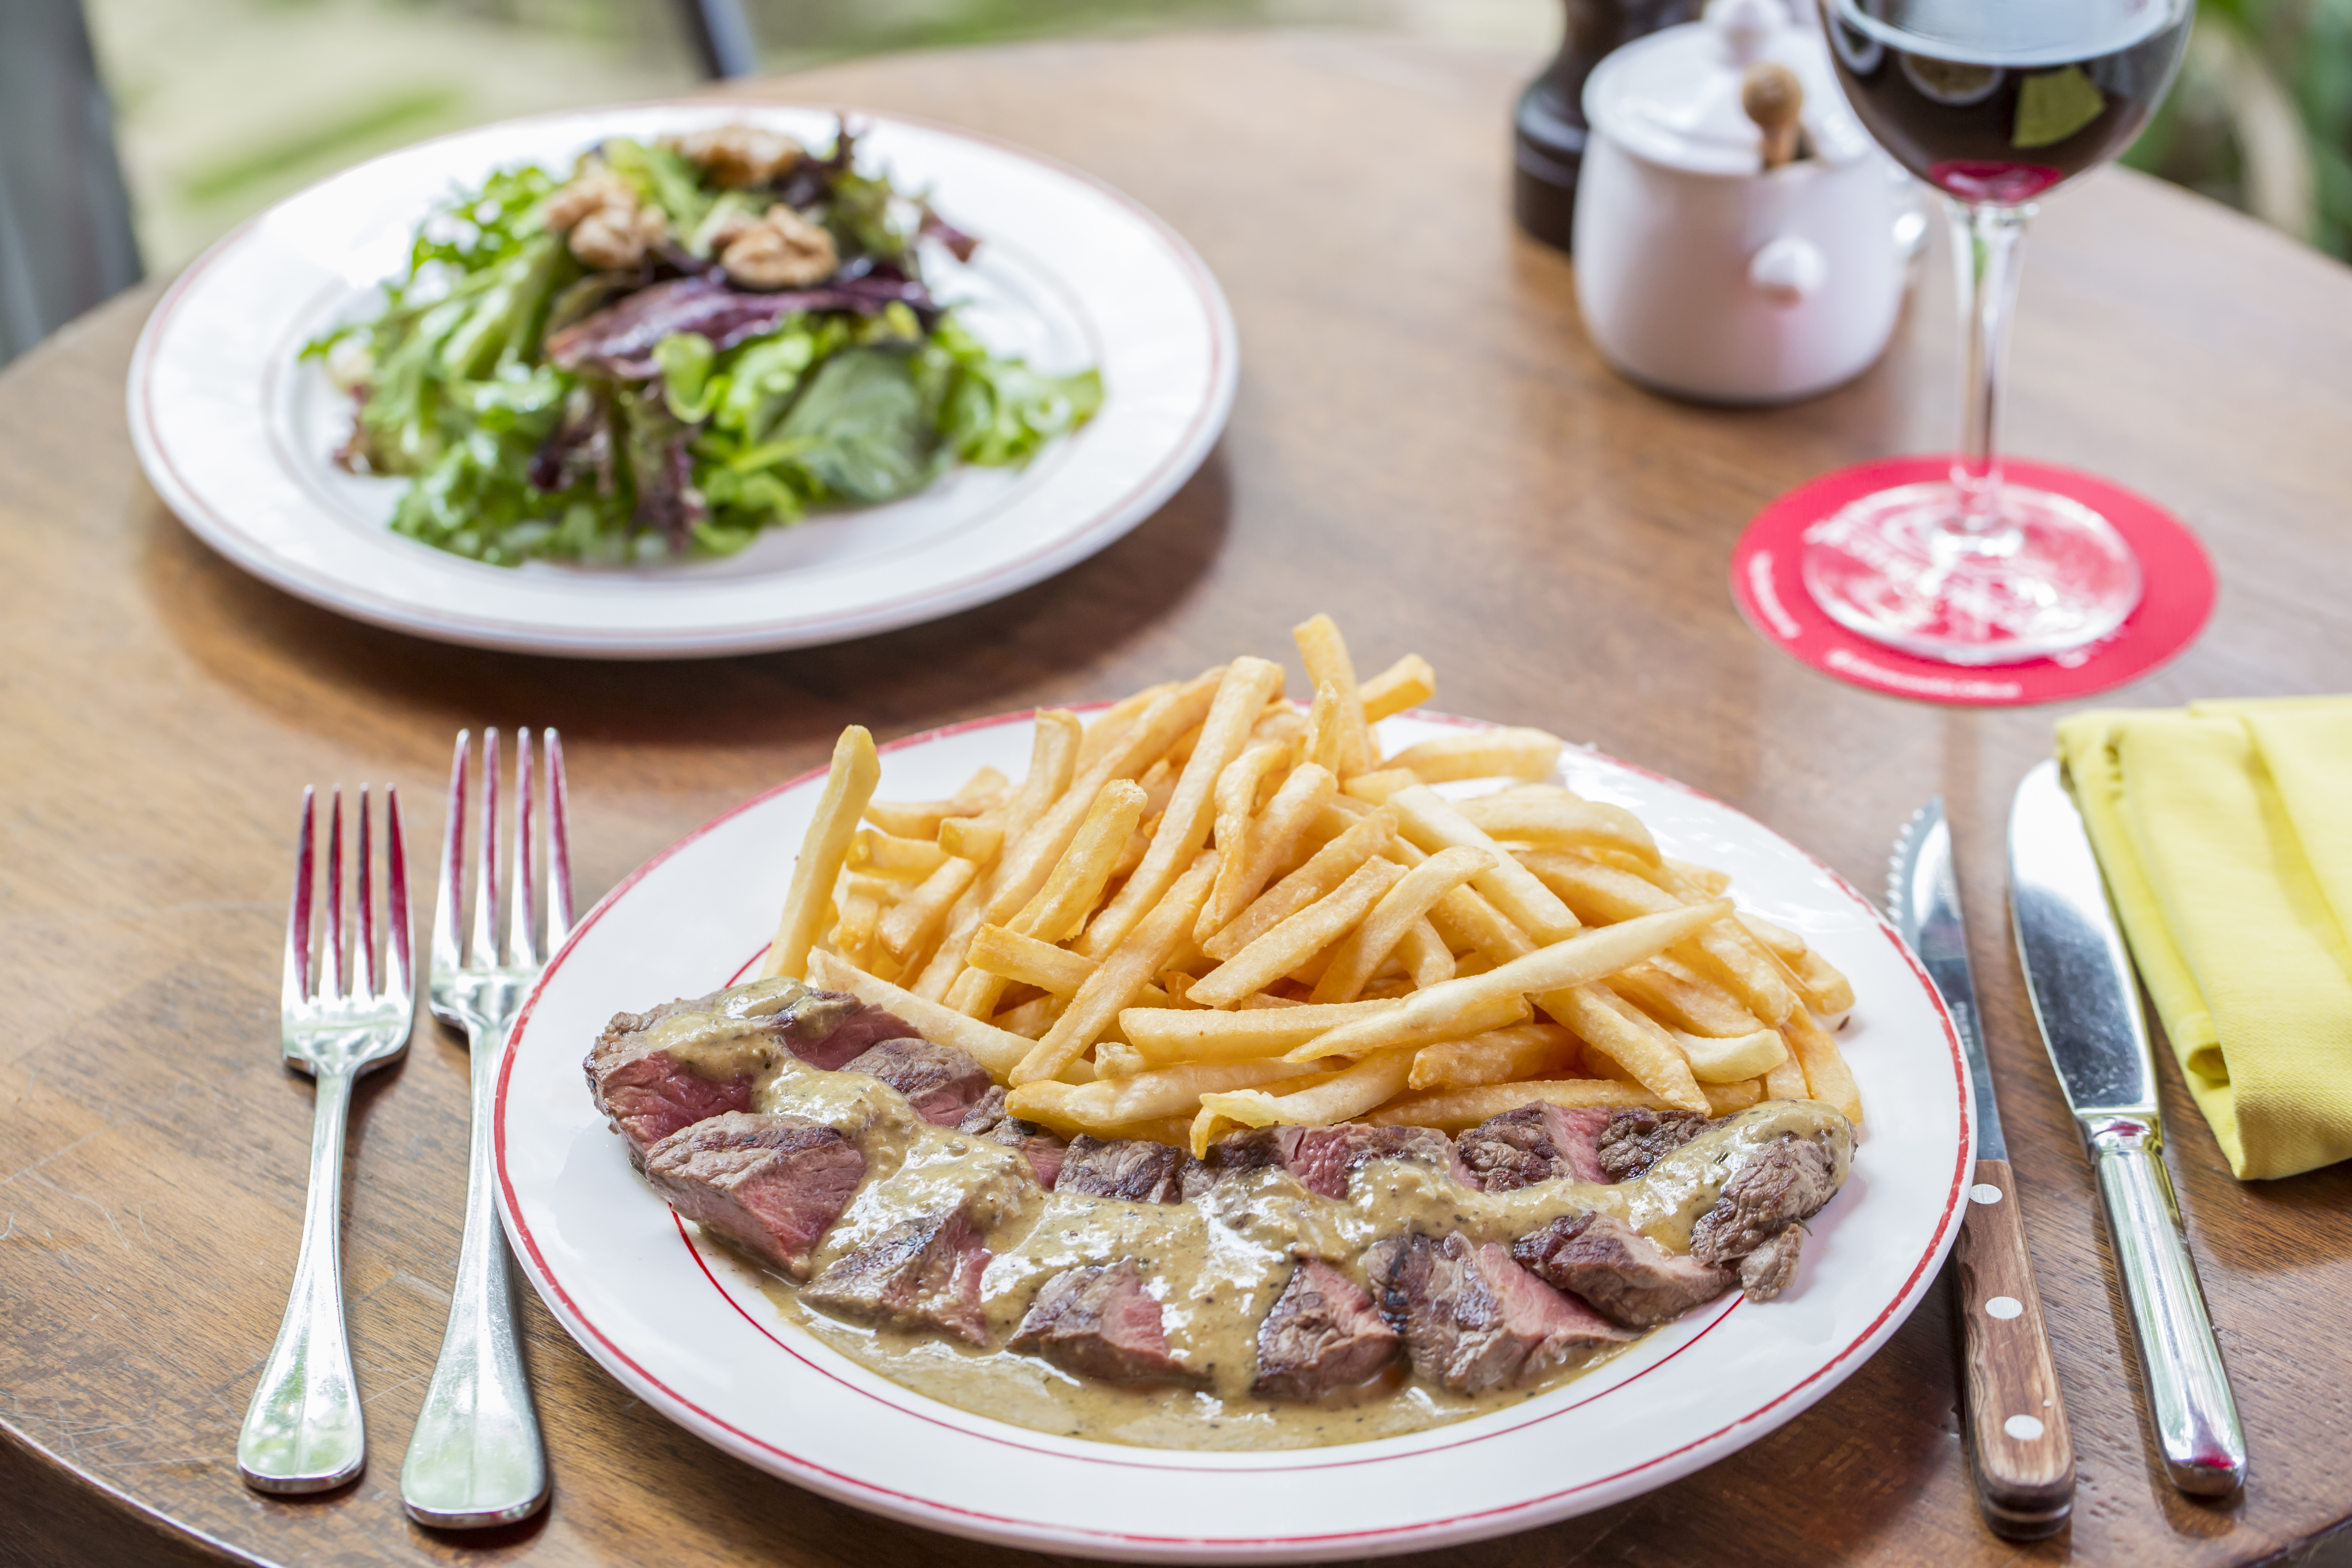 Free Fries Day - LEntrecote